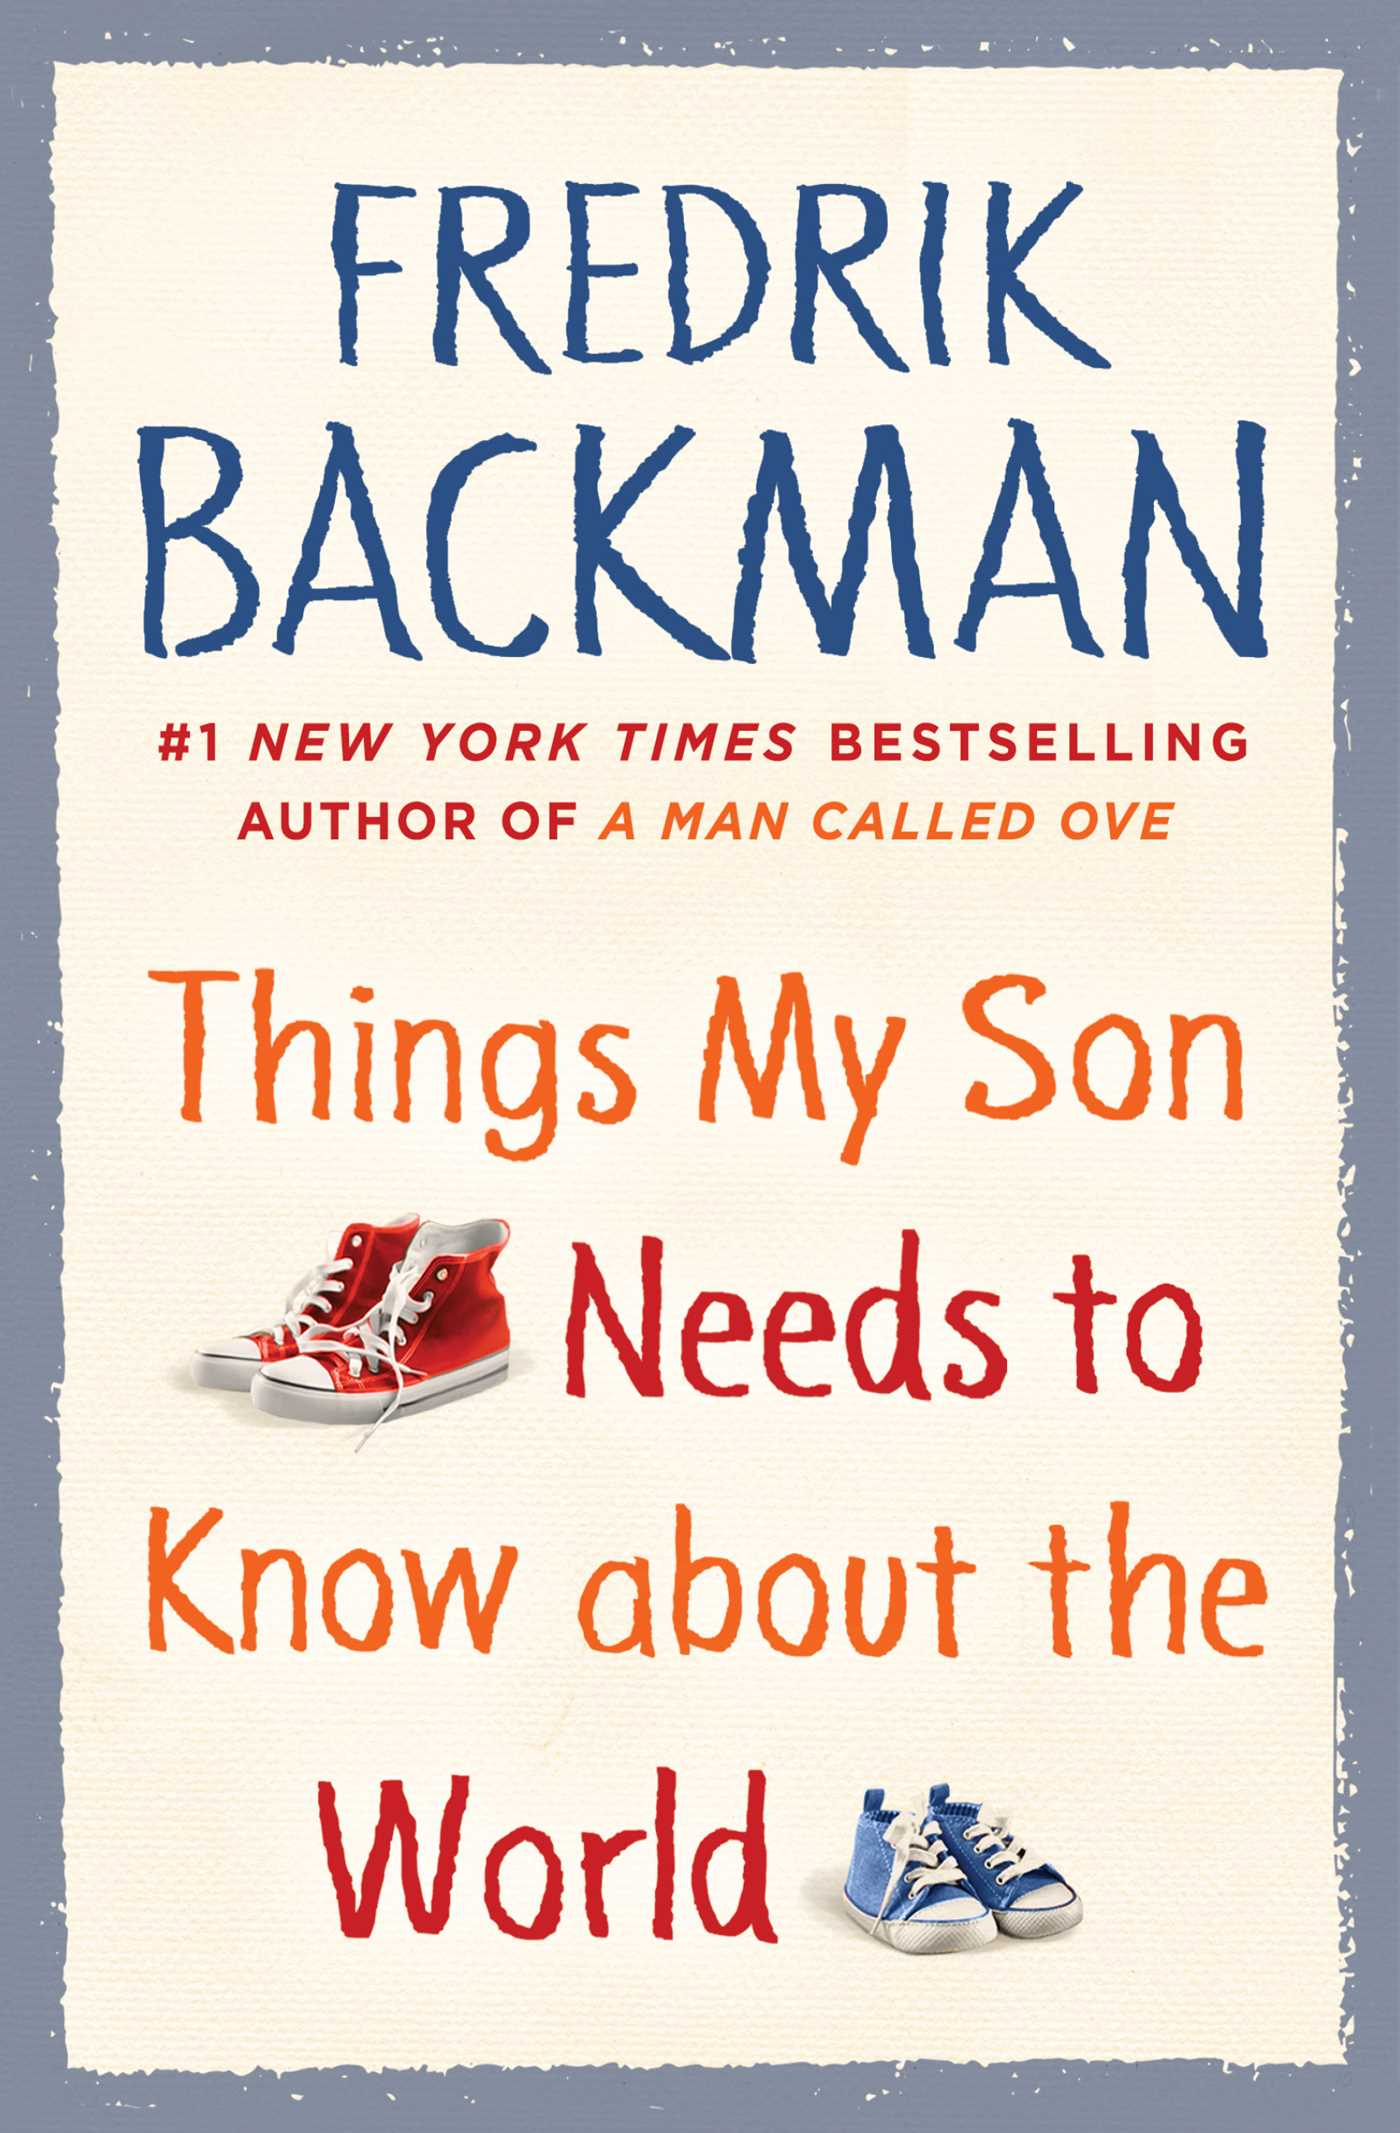 Fredrik Backman – Things My Son Needs